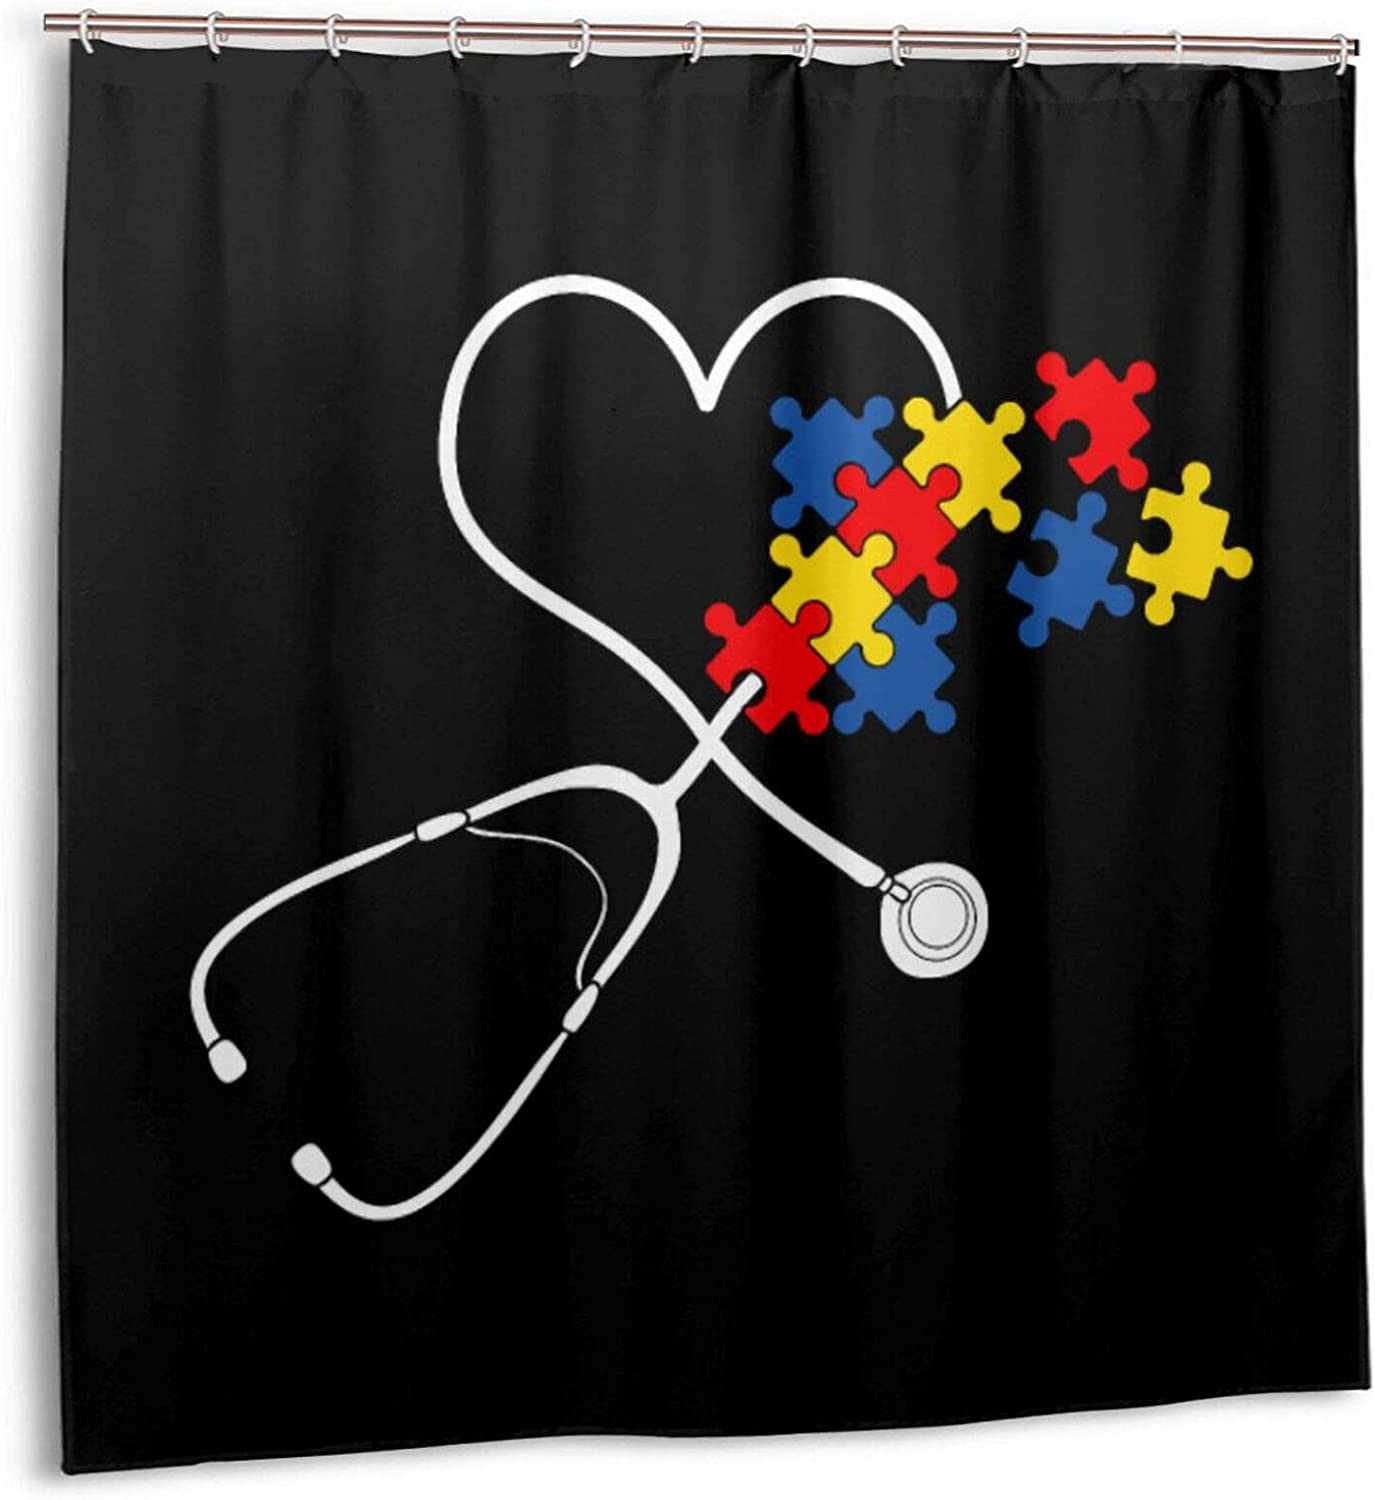 Stethoscope Autism Free Max 85% OFF shipping on posting reviews Nurse Shower Curtain Curtains Cont for